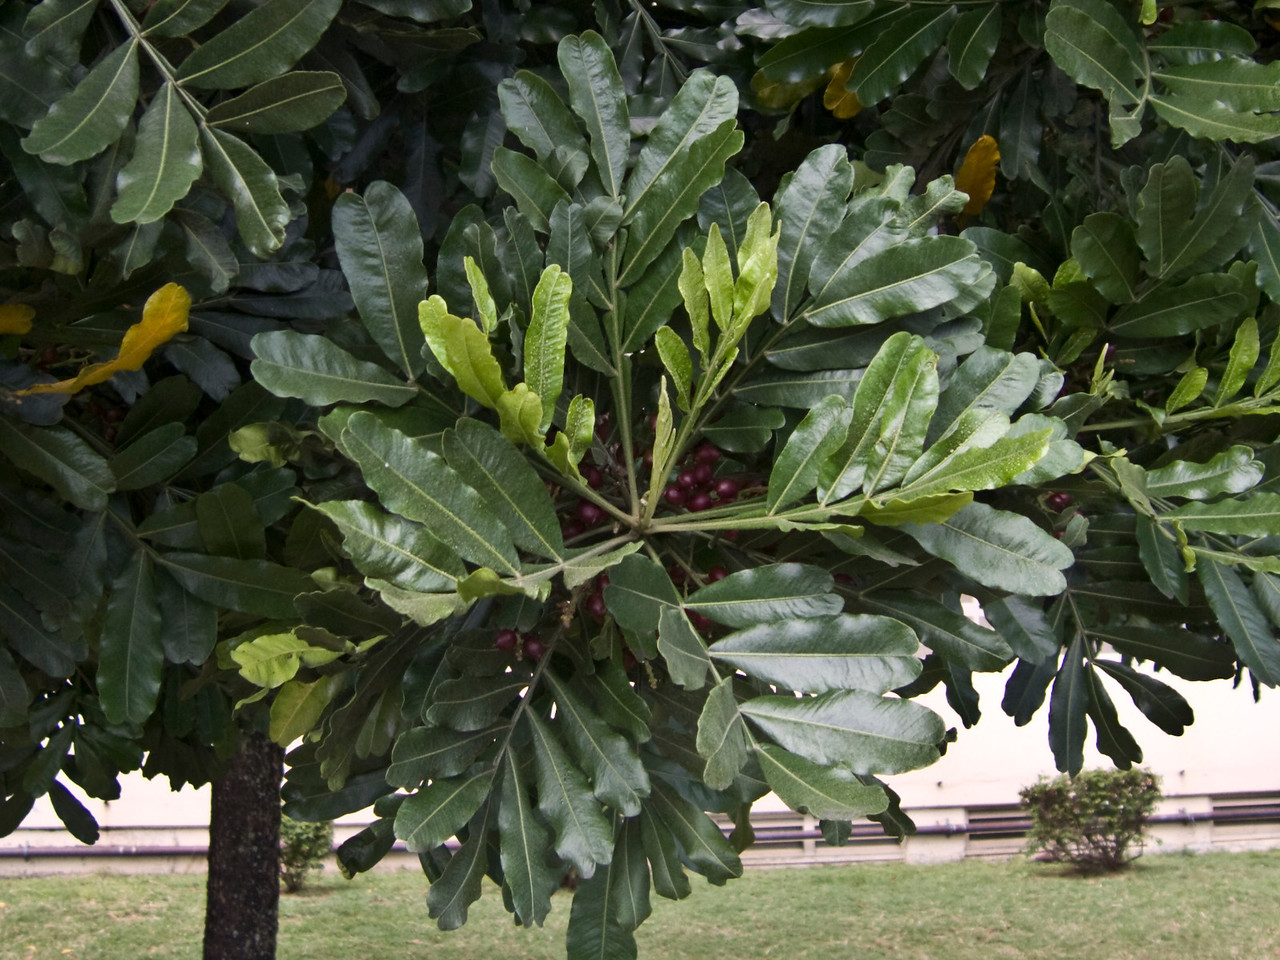 Filicium decipiens (Sapindaceae) (leaves) planted ornamentally in Honolulu.